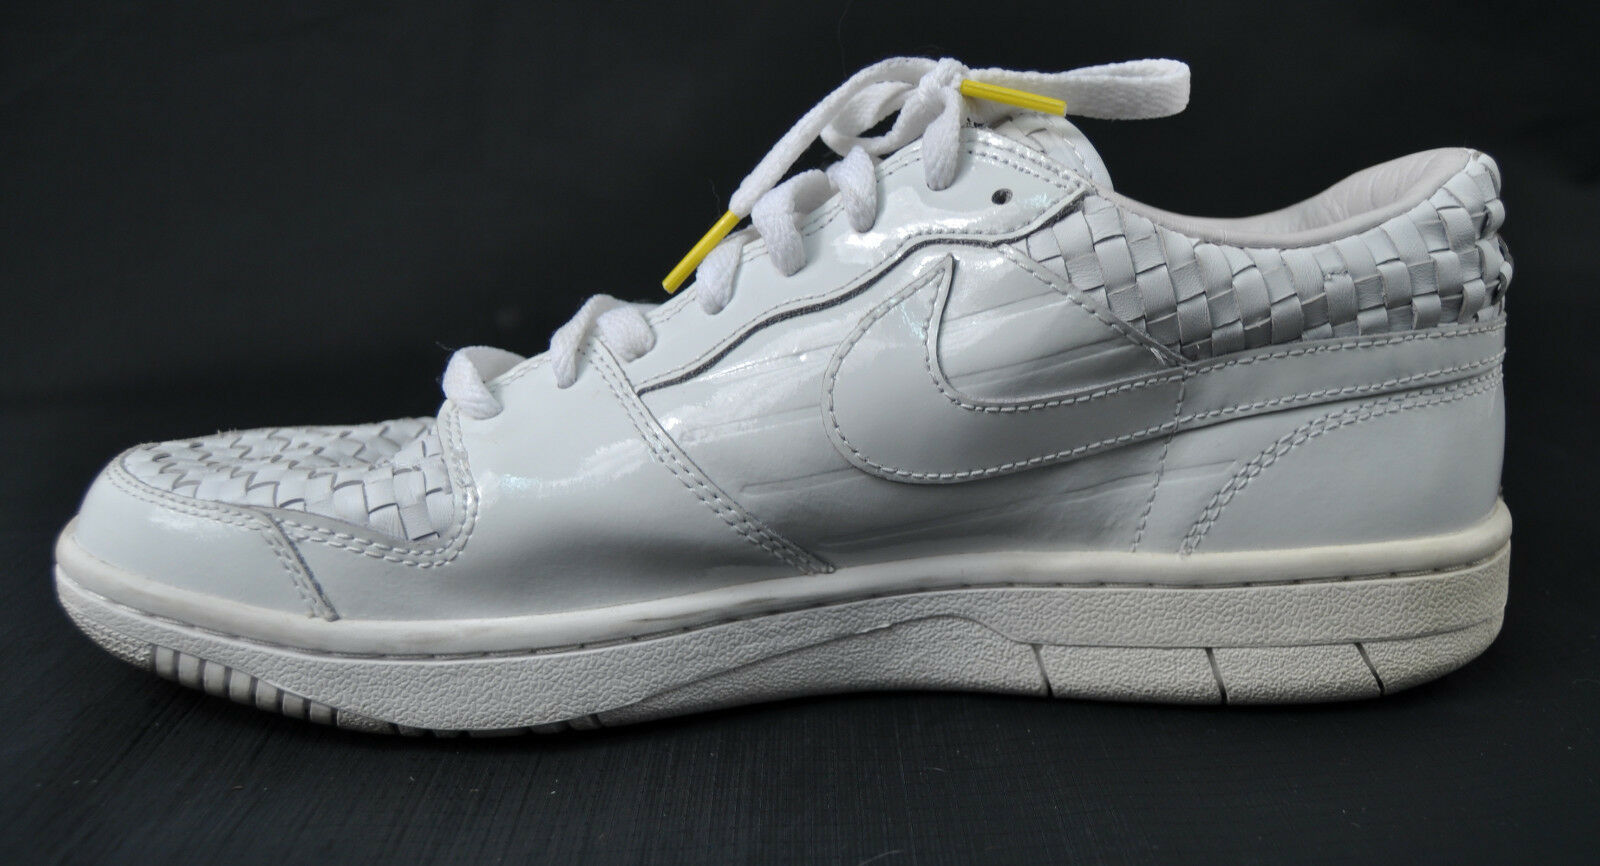 premium selection 8e127 4b236 ... Nike Court Force Low Caol Uno Woven Woven Woven White Shoes 11 Mens  6ec655 ...